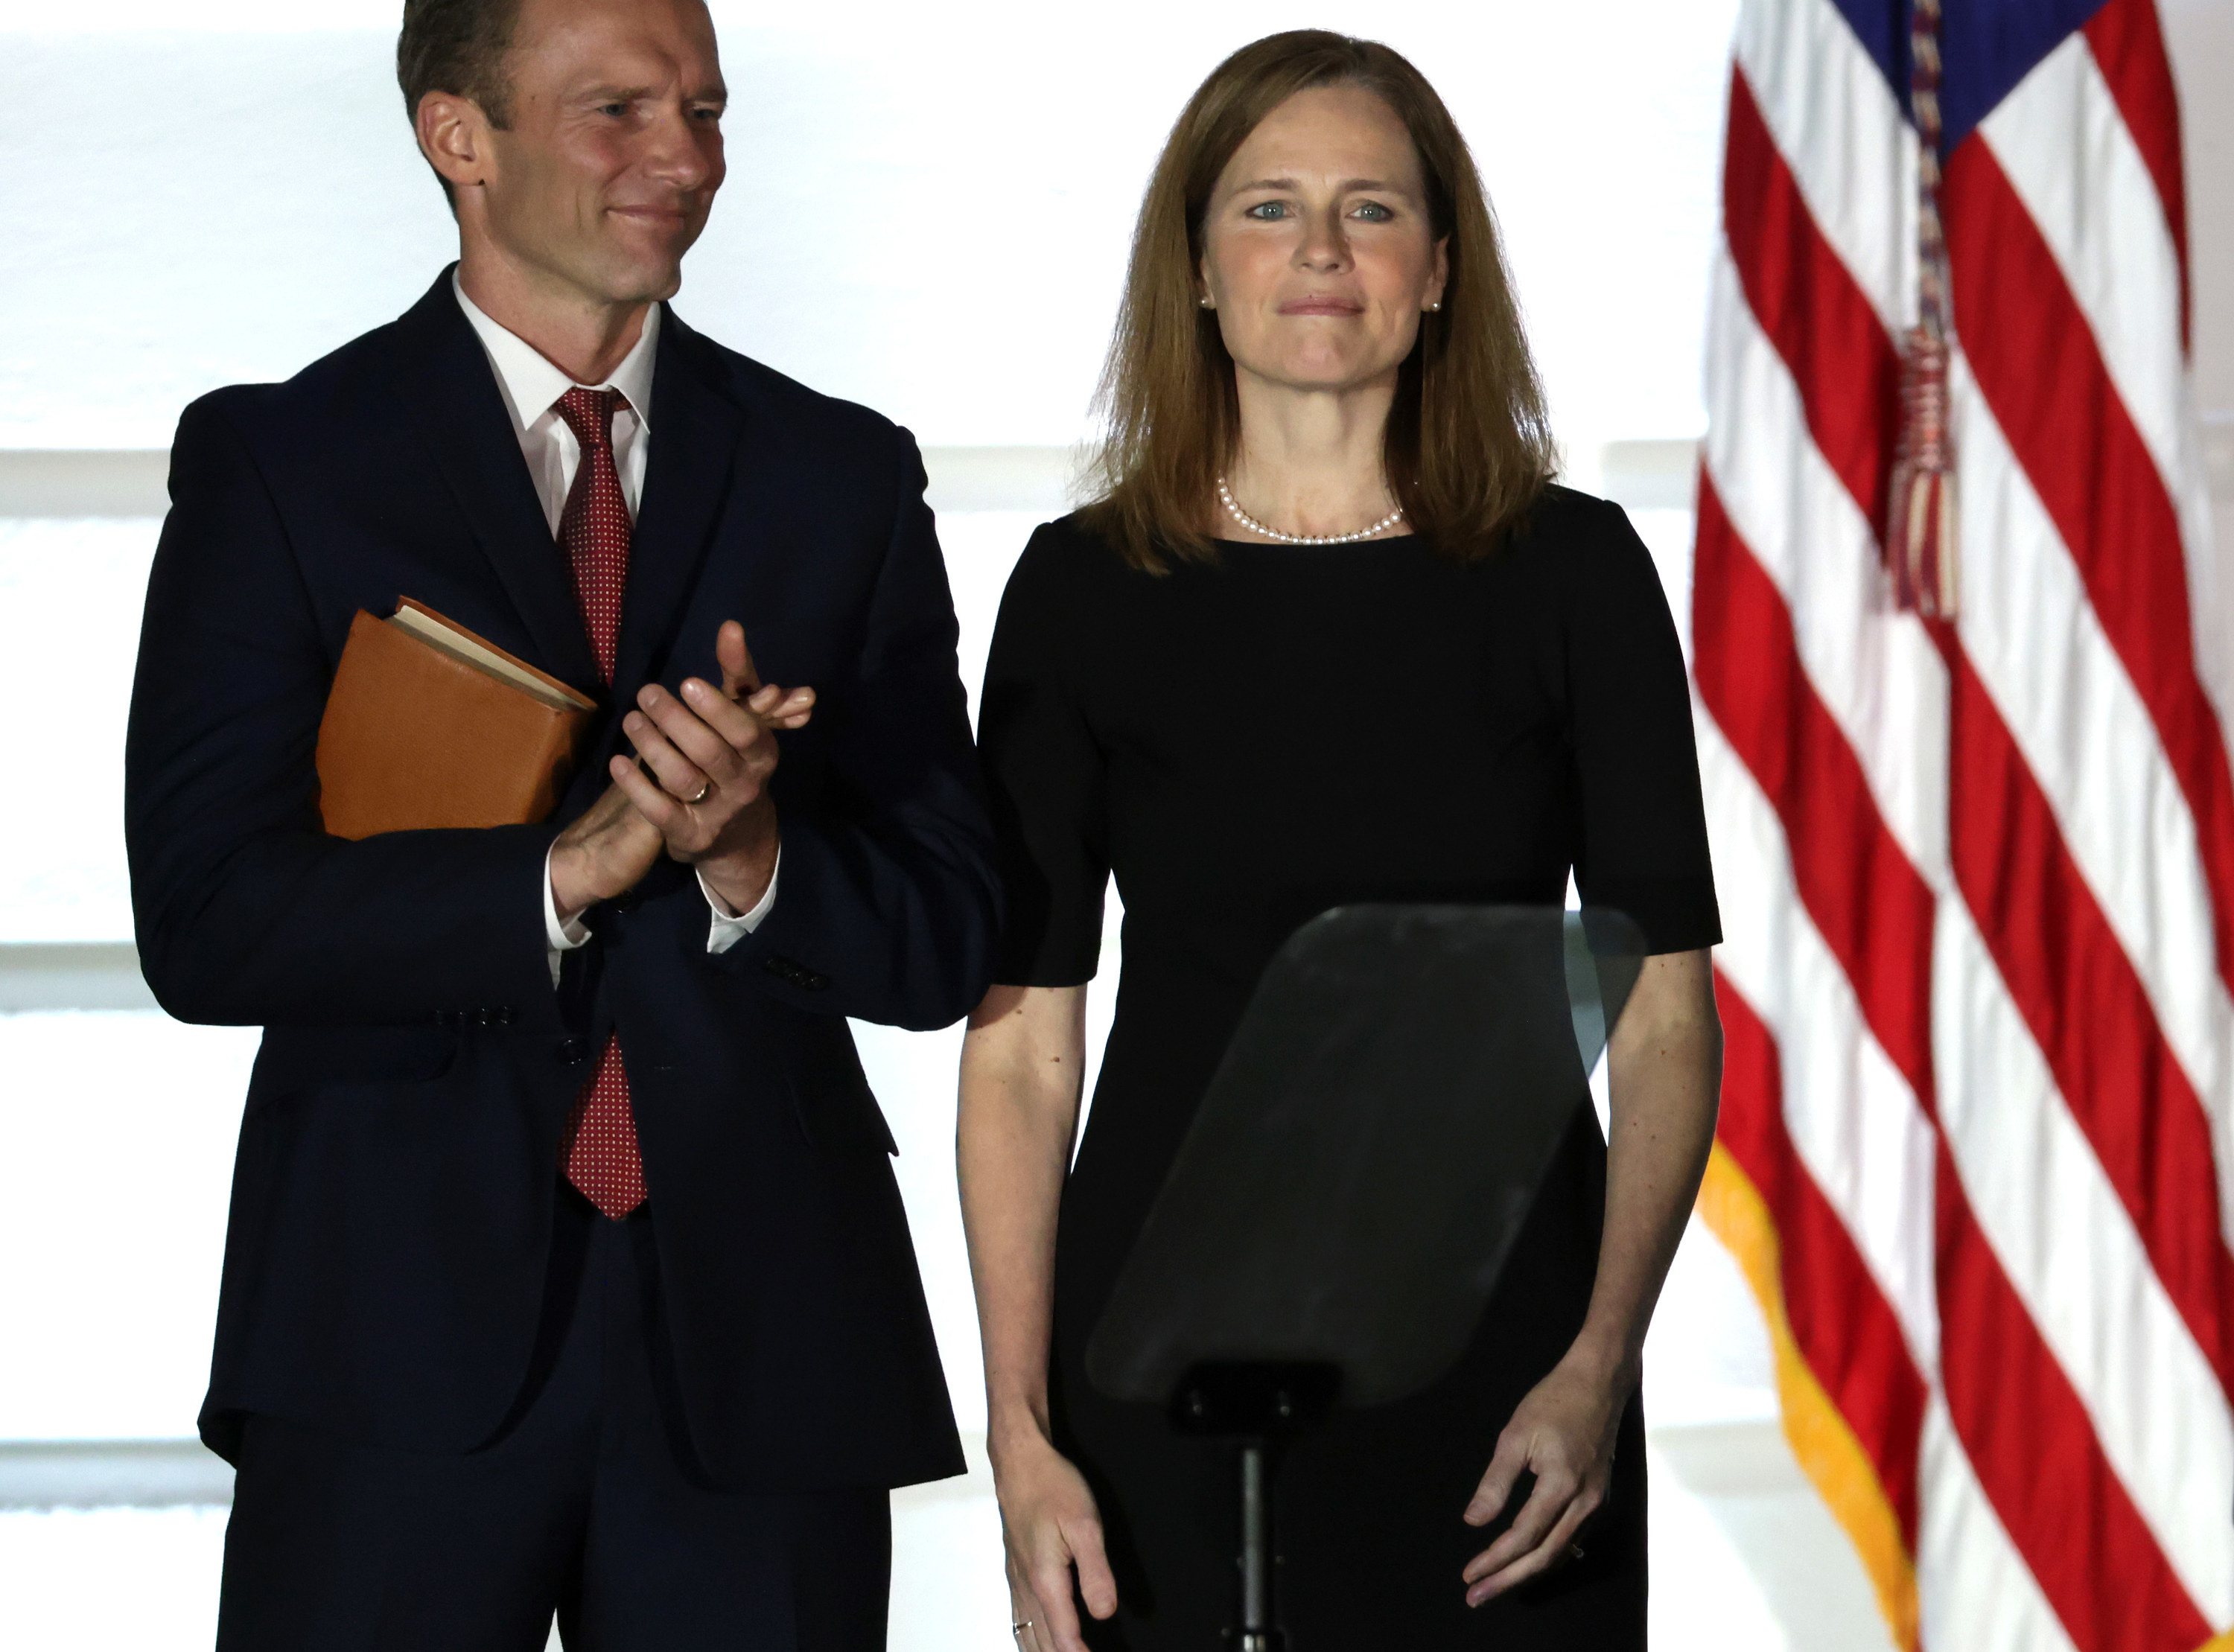 Amy Coney Barrett after taking the oath to the Supreme Court